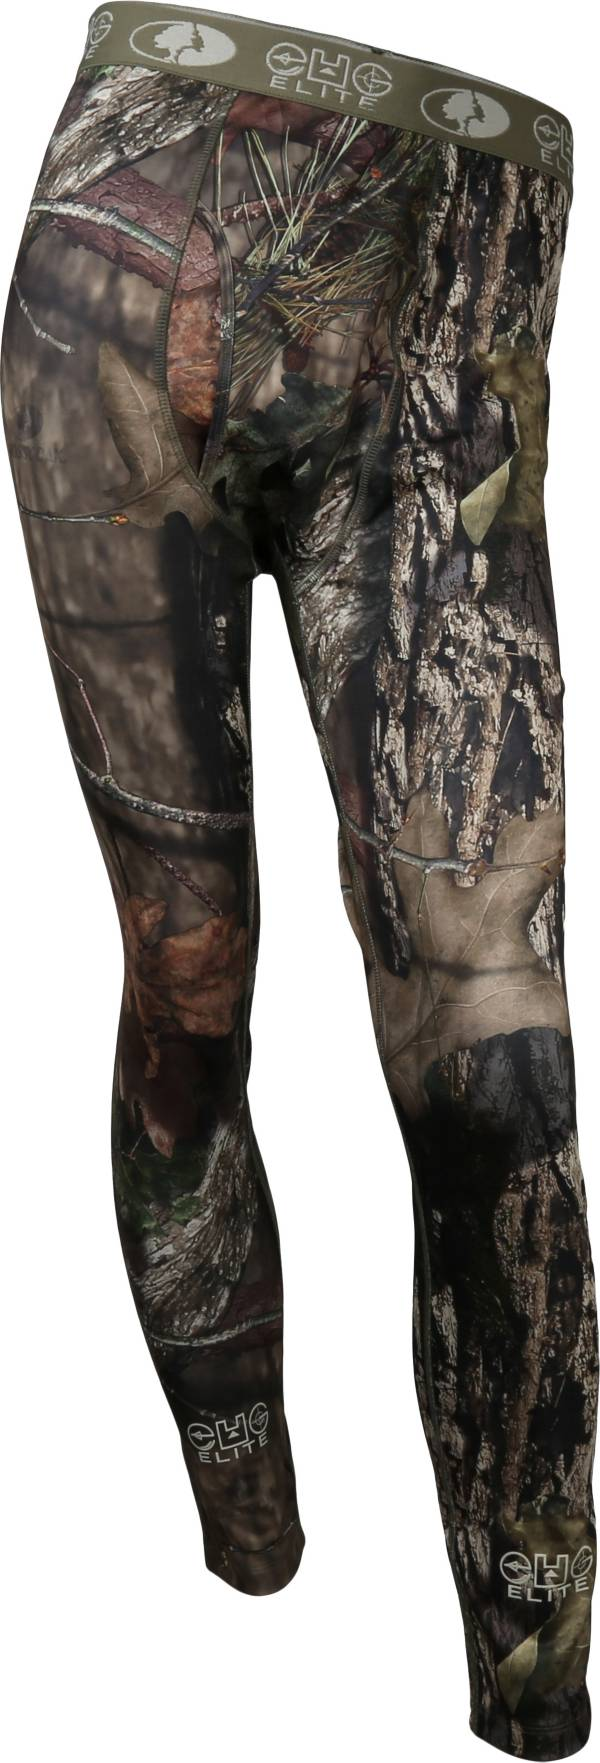 Paramount Adult EHG Elite Mossy Oak Kenai Insulated Base Layer Bottoms product image